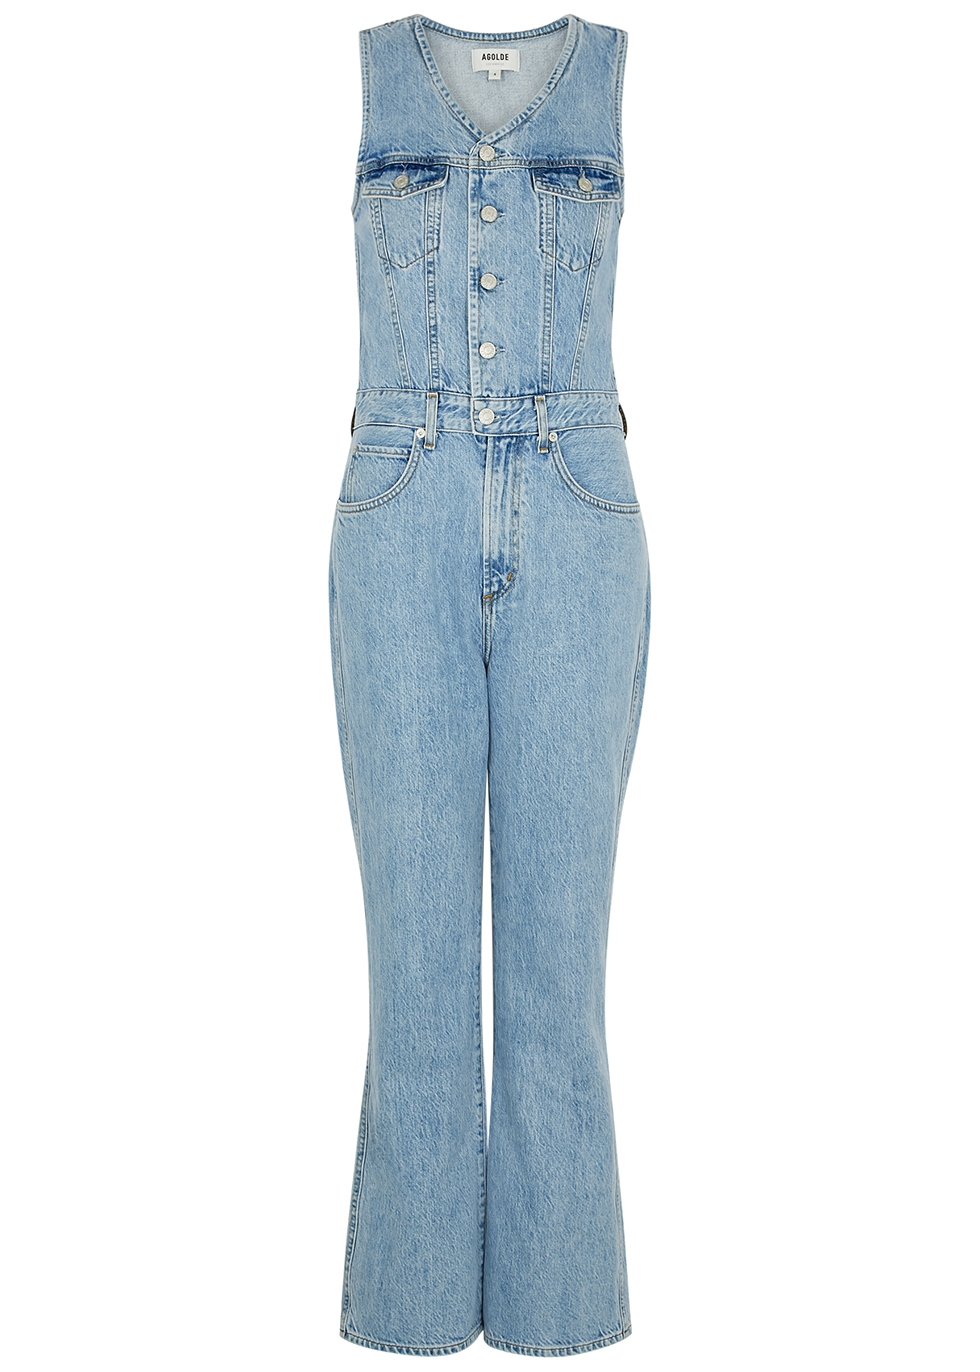 70's blue denim jumpsuit